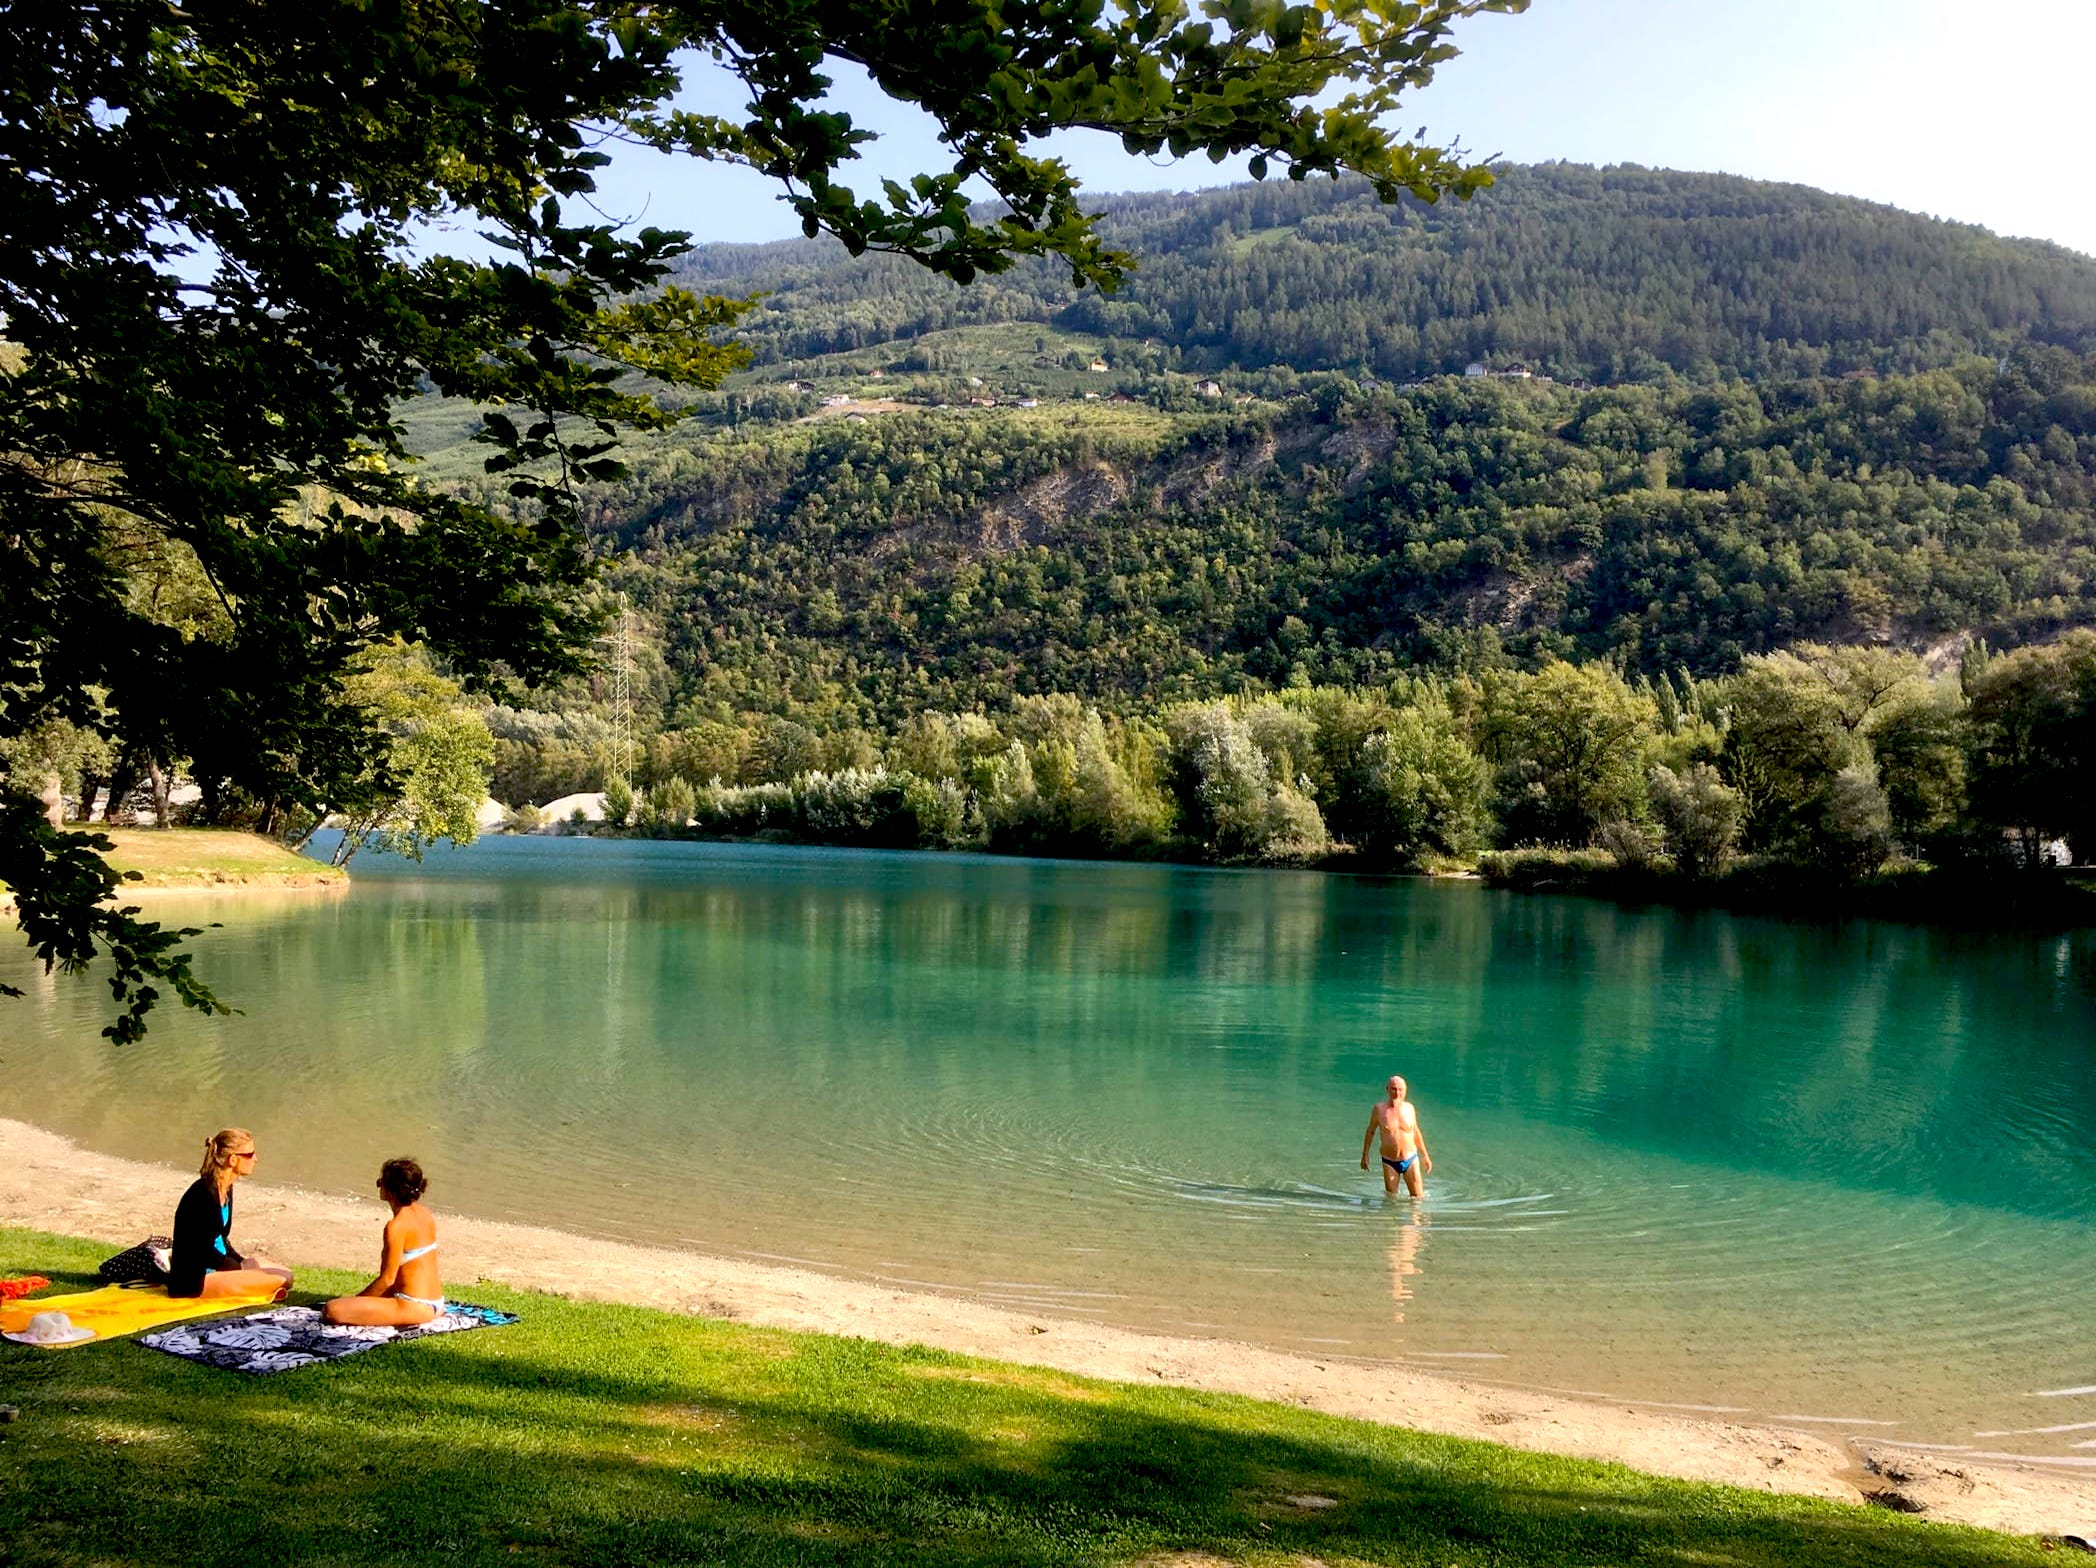 photo of Les Isle swimming lake near Sion